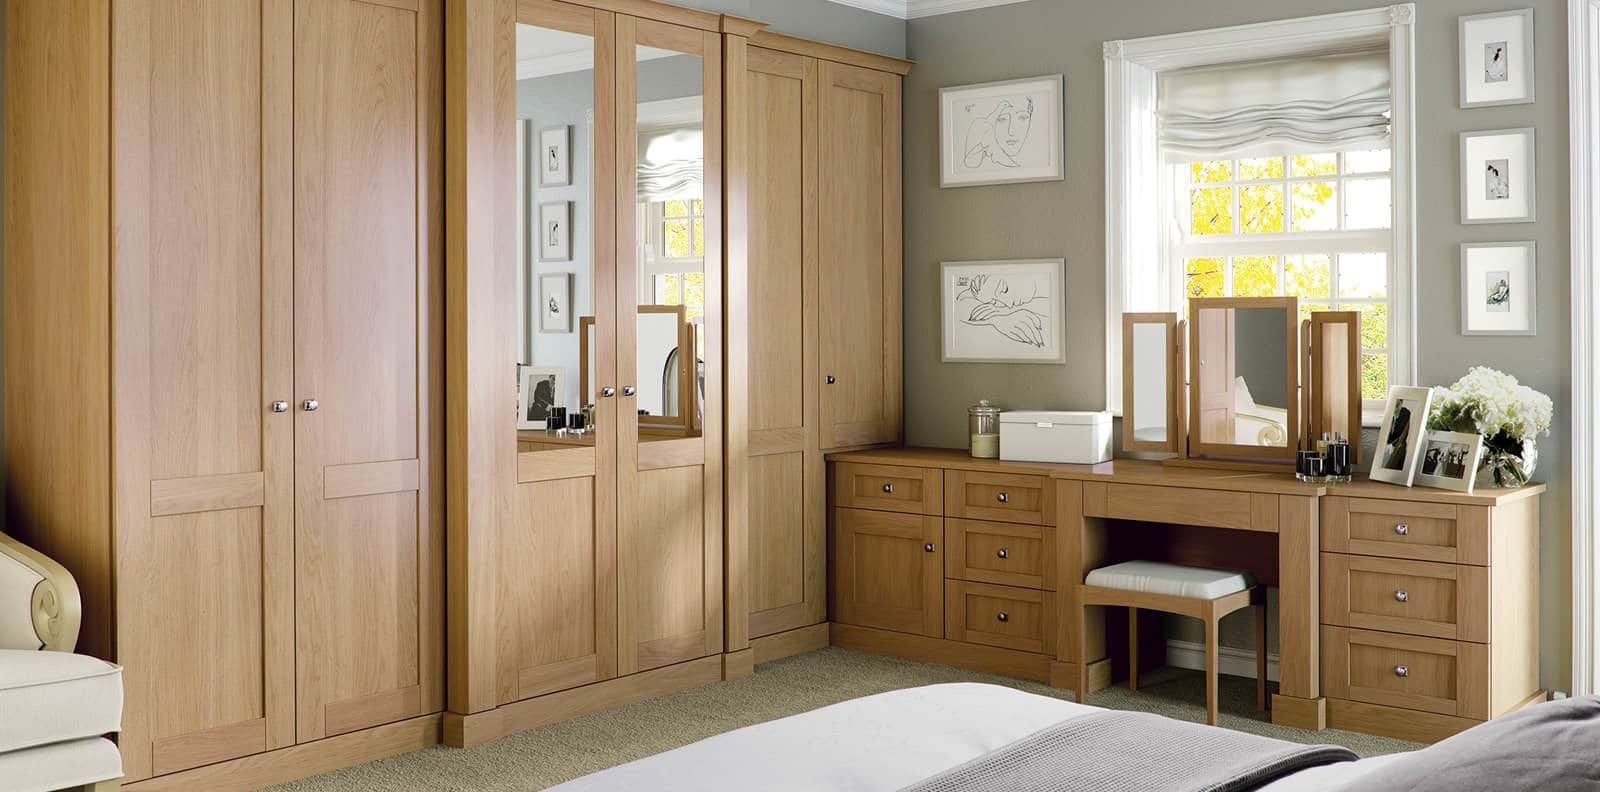 100 Wooden Bedroom Wardrobe Design Ideas (WITH PICTURES) | WARDROBES ...